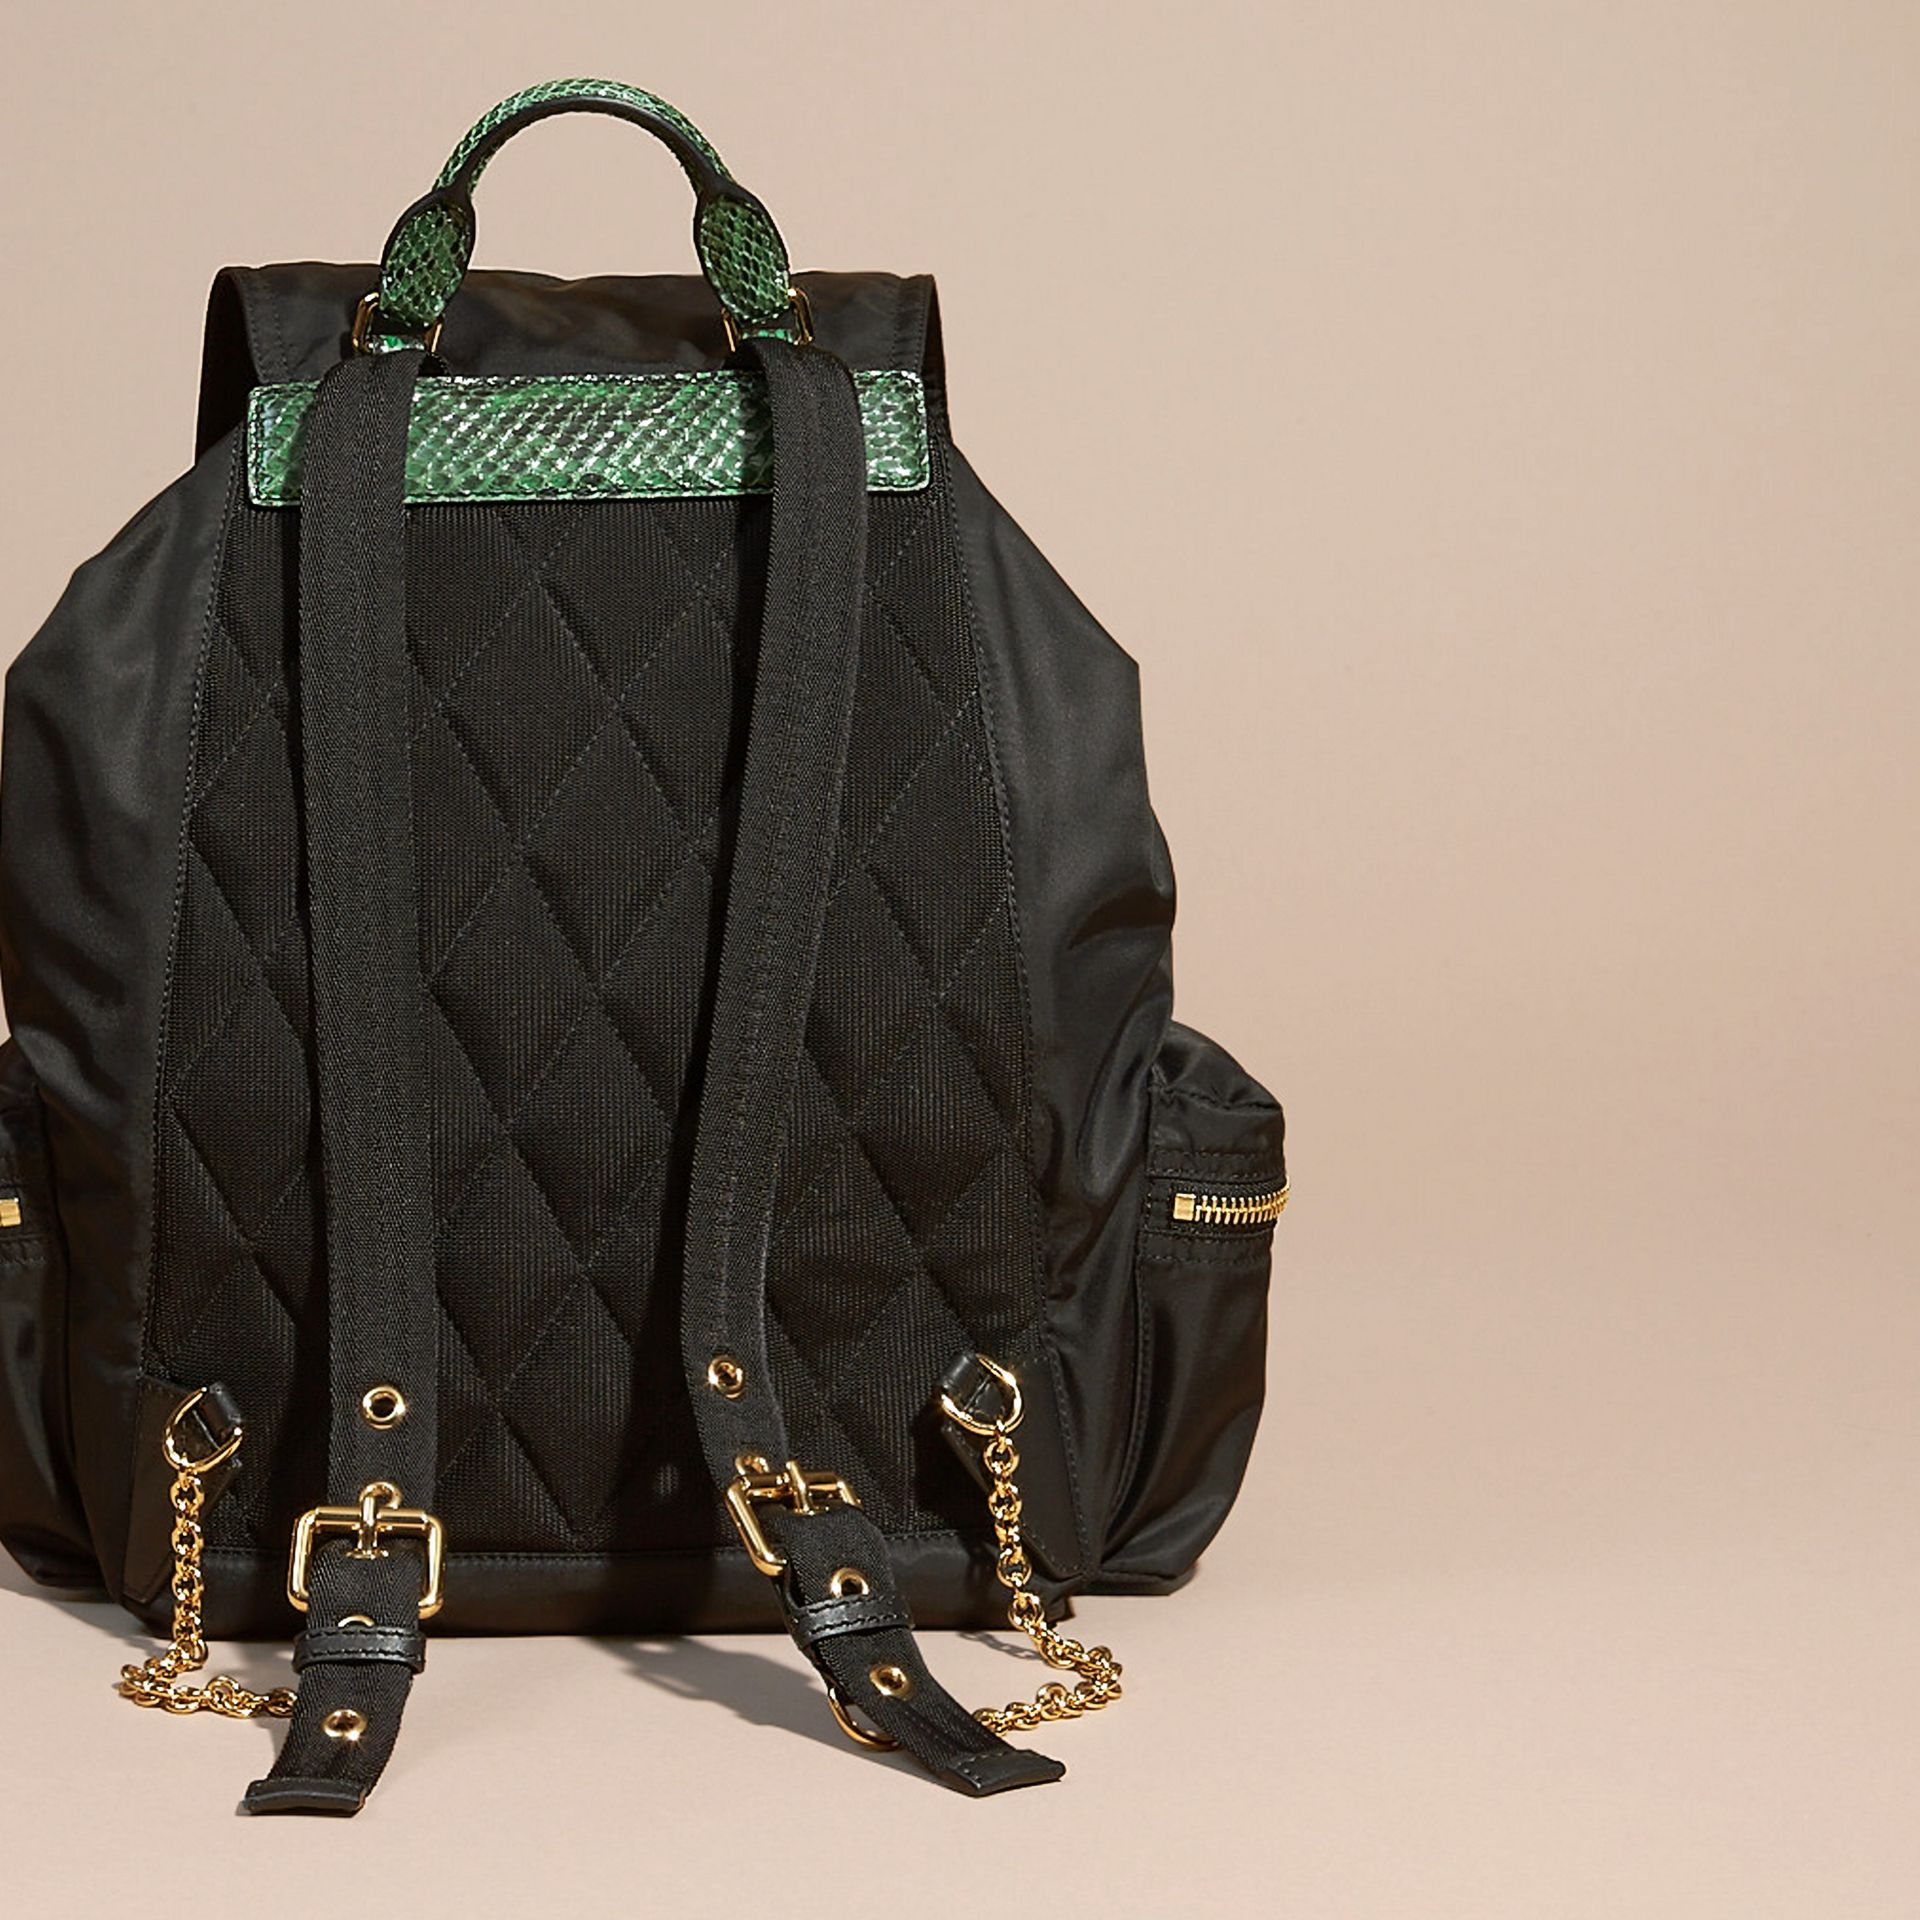 Black/bright green The Large Rucksack in Technical Nylon and Snakeskin Black/bright Green - gallery image 4